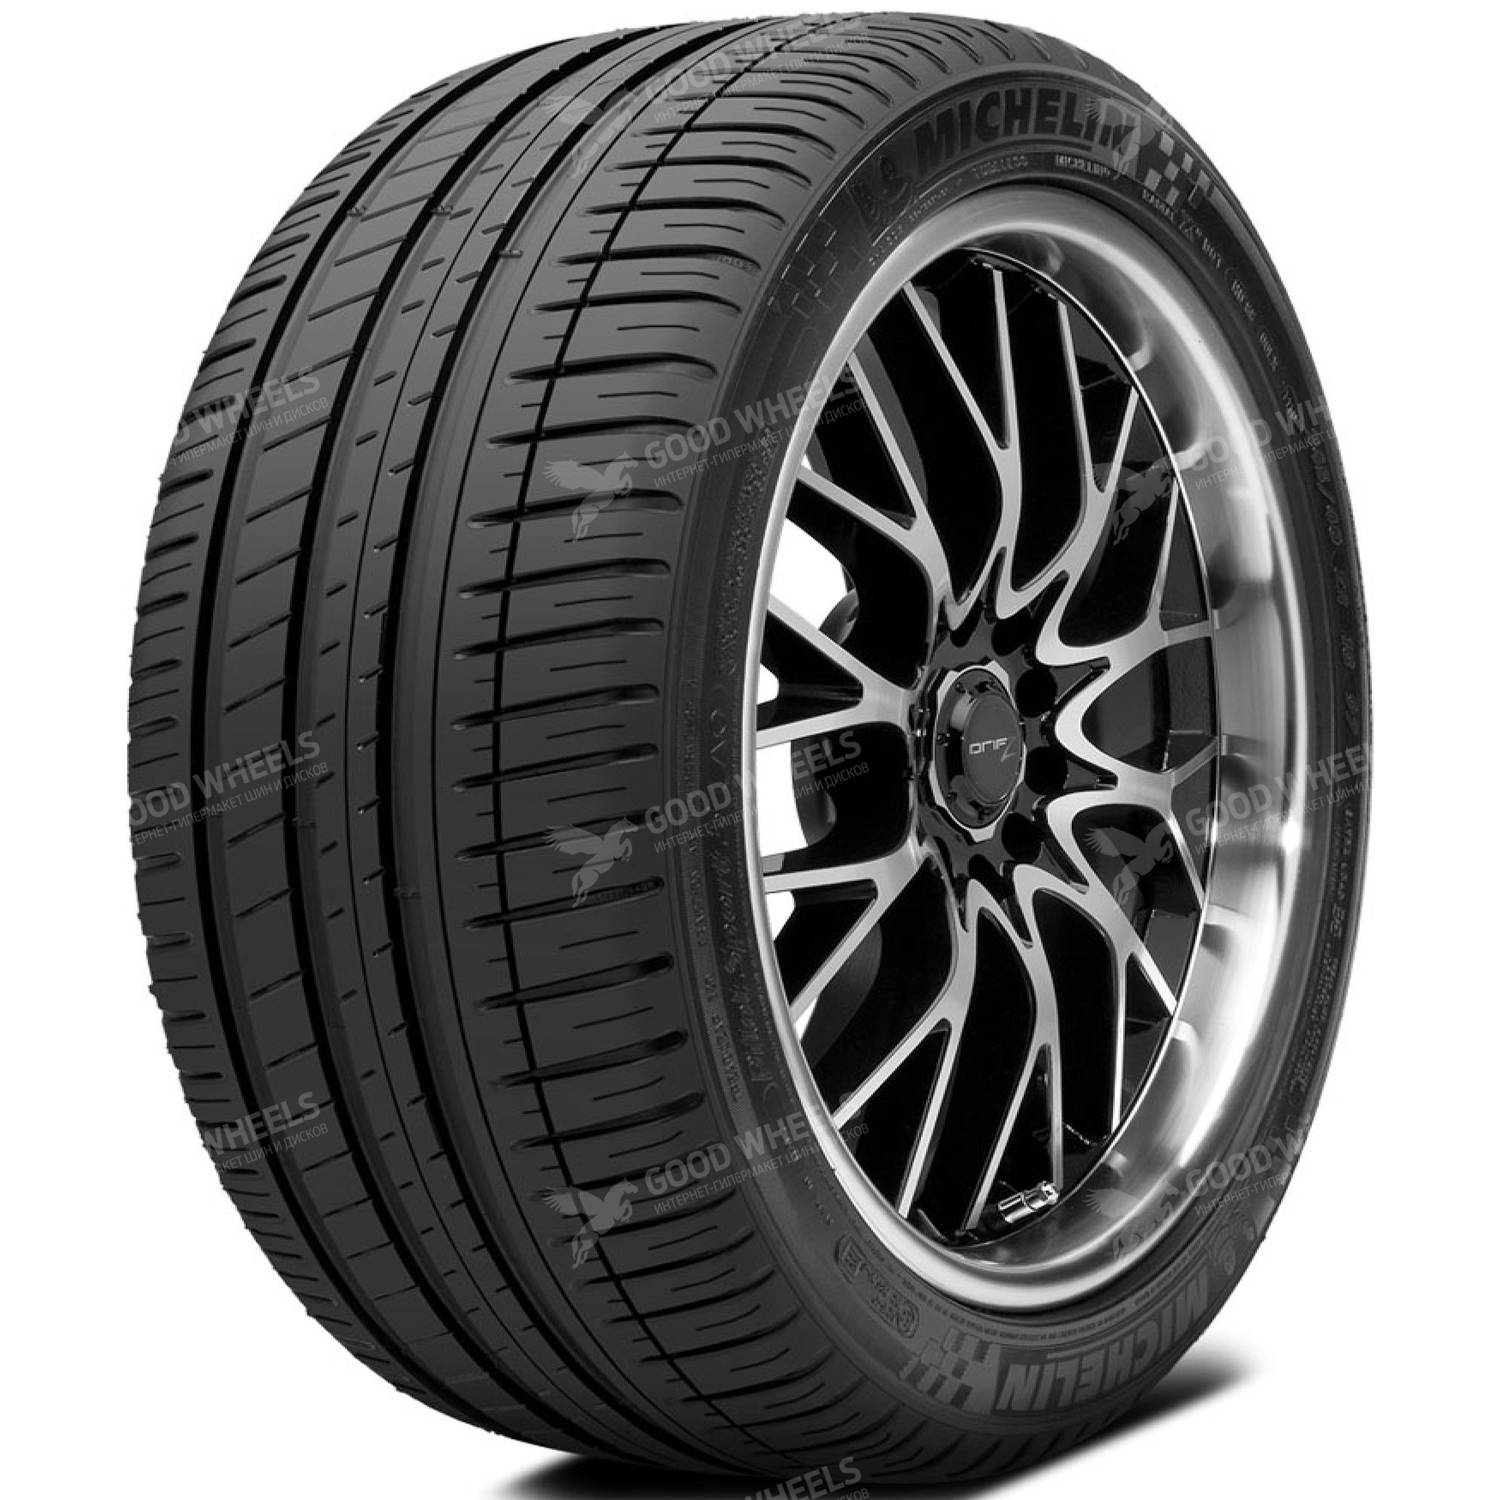 Michelin Pilot Sport 3 (PS3) 275/40 R19 101Y